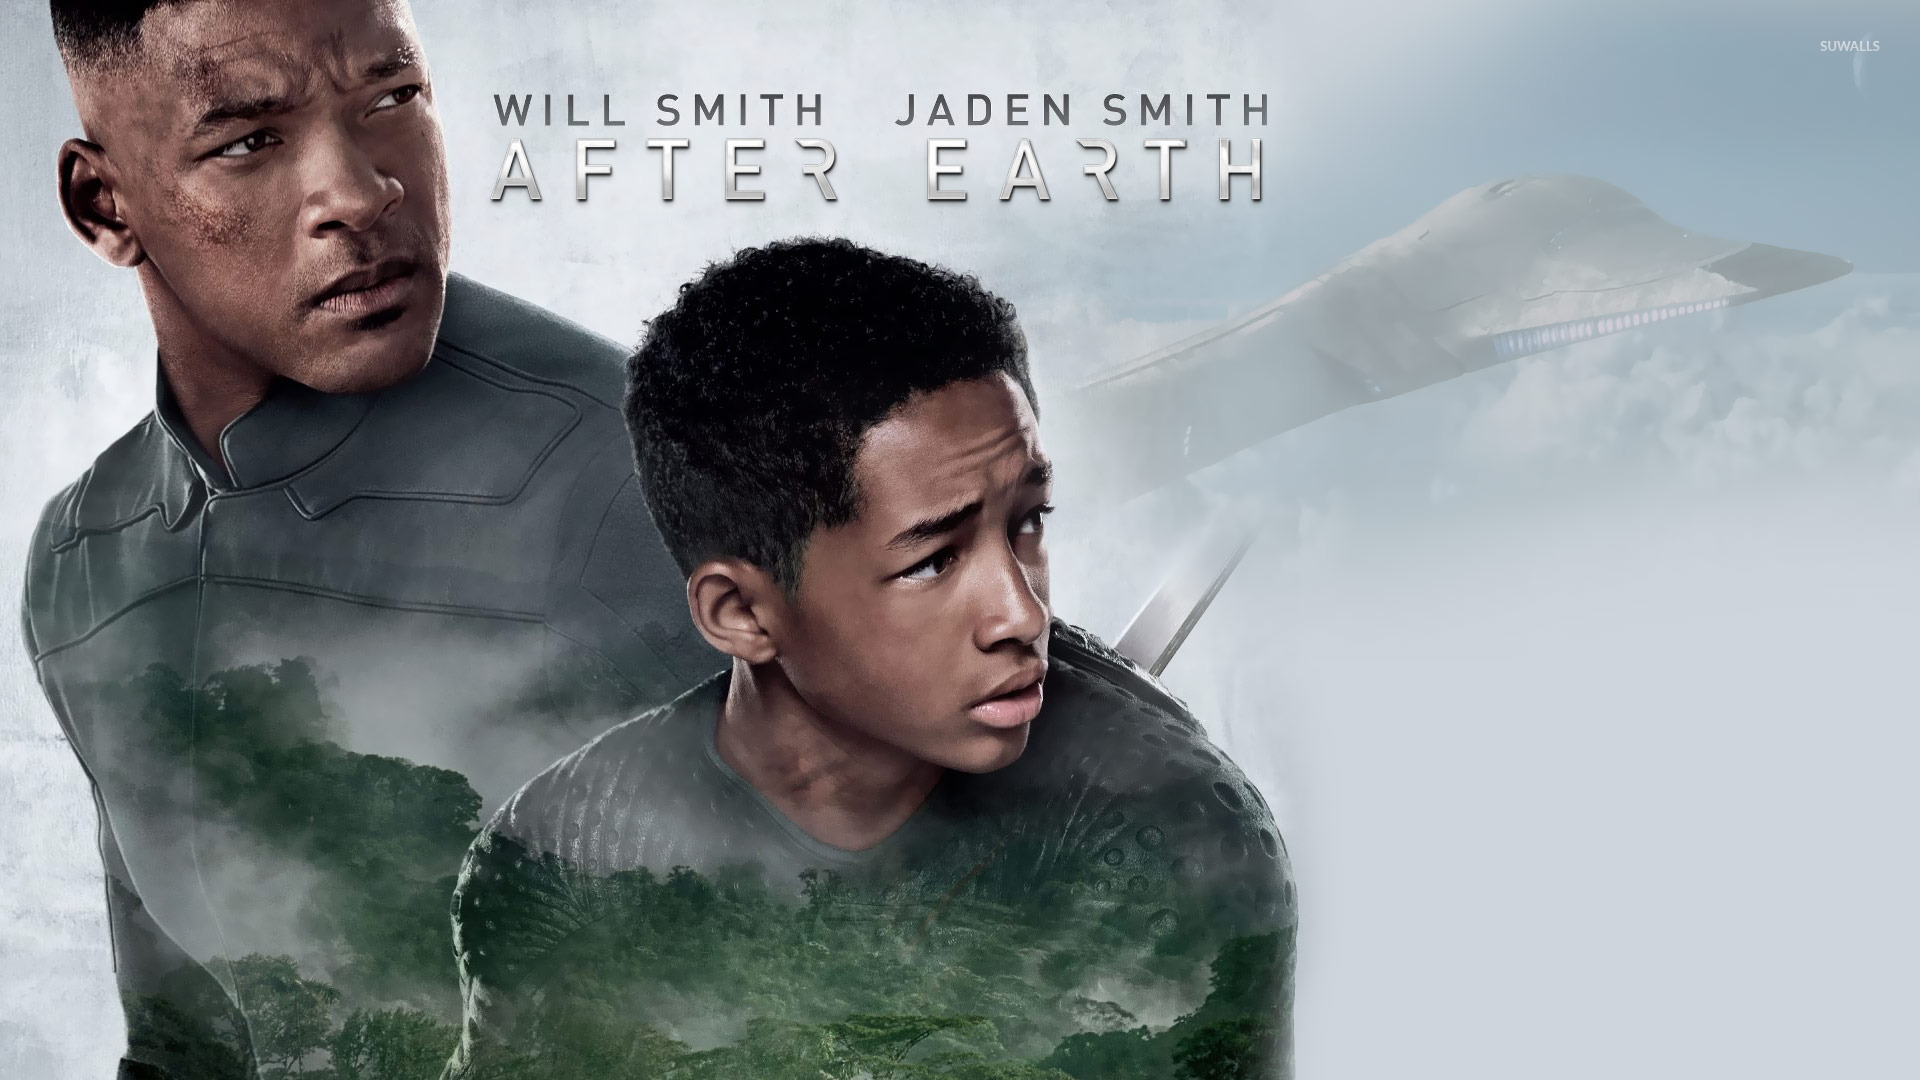 Cypher Raige and Kitai Raige   After Earth wallpaper   Movie 1920x1080